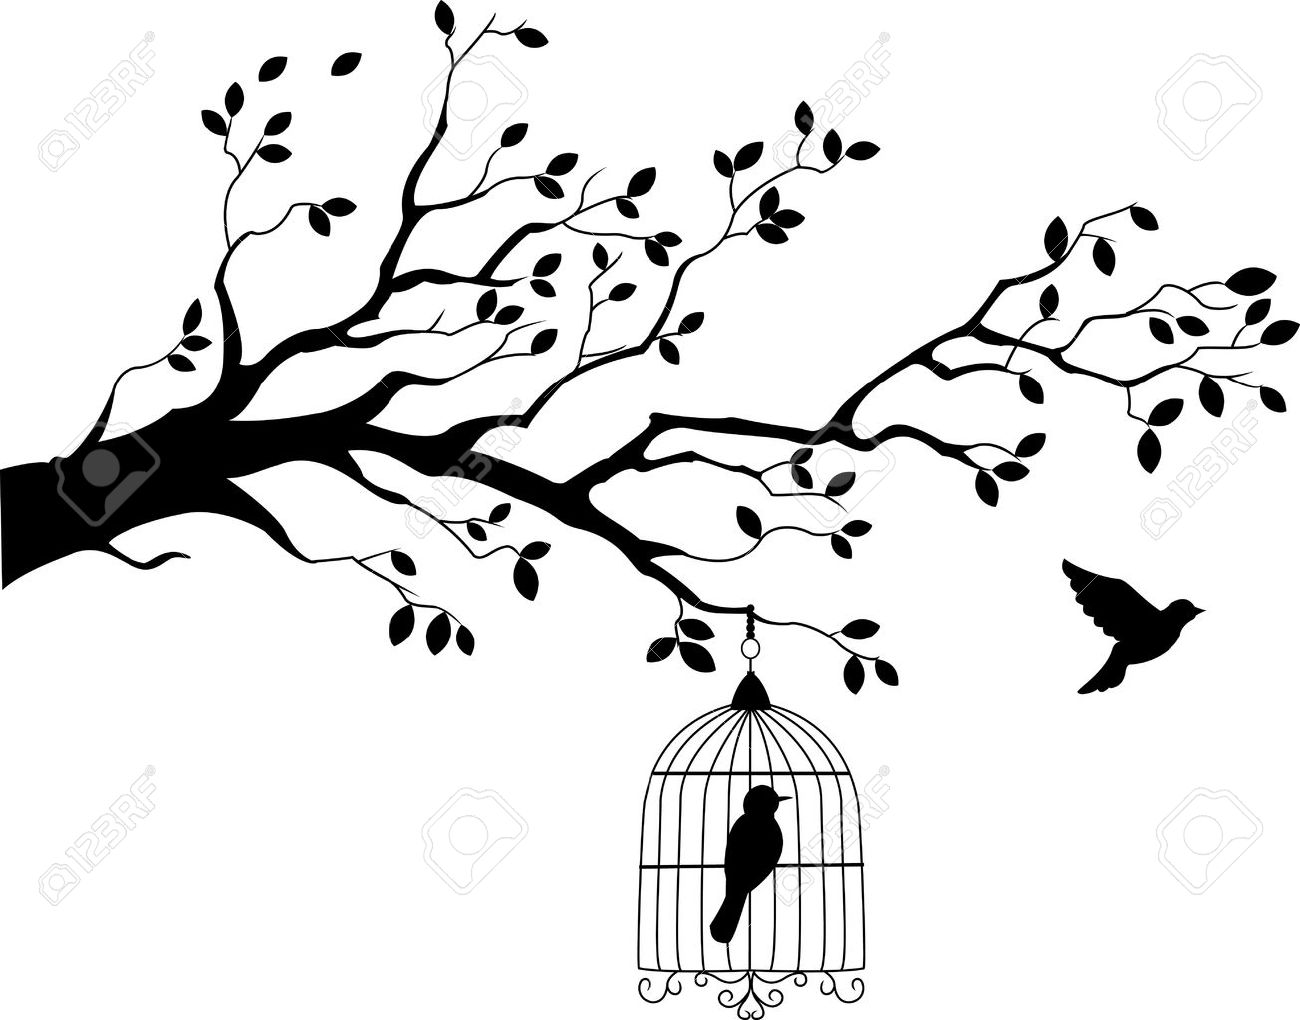 Tree silhouette with bird flying - 15234017